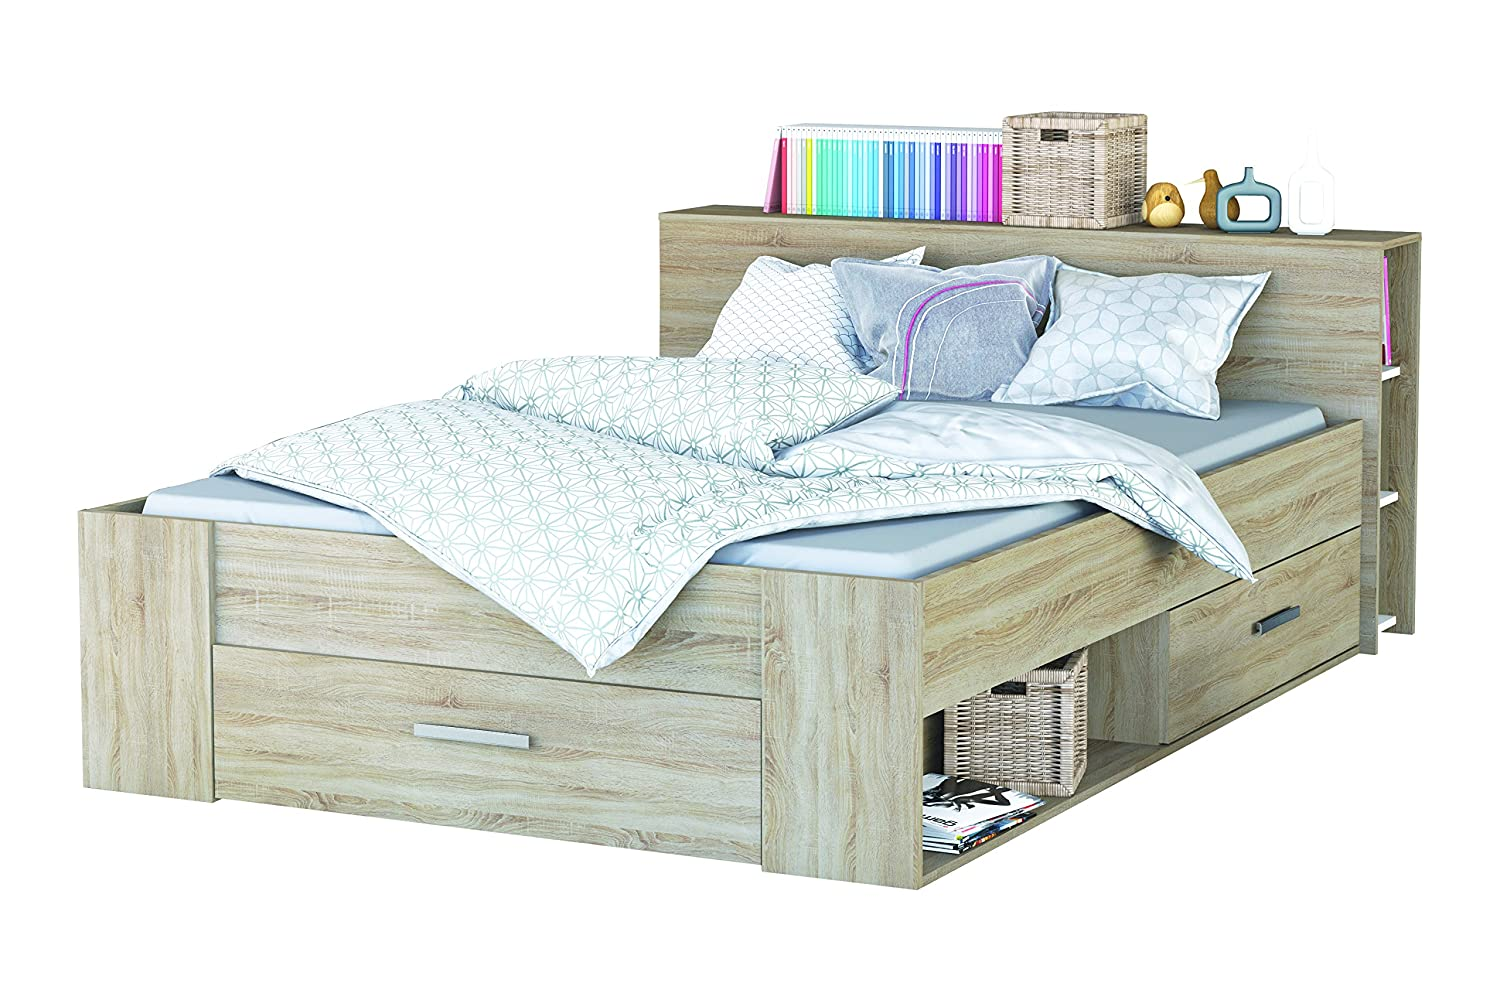 Bedombouw 140 Bij 200.Demeyere Pocket Bed 140 X 200 Cm 159571 Brushed Oak Wood